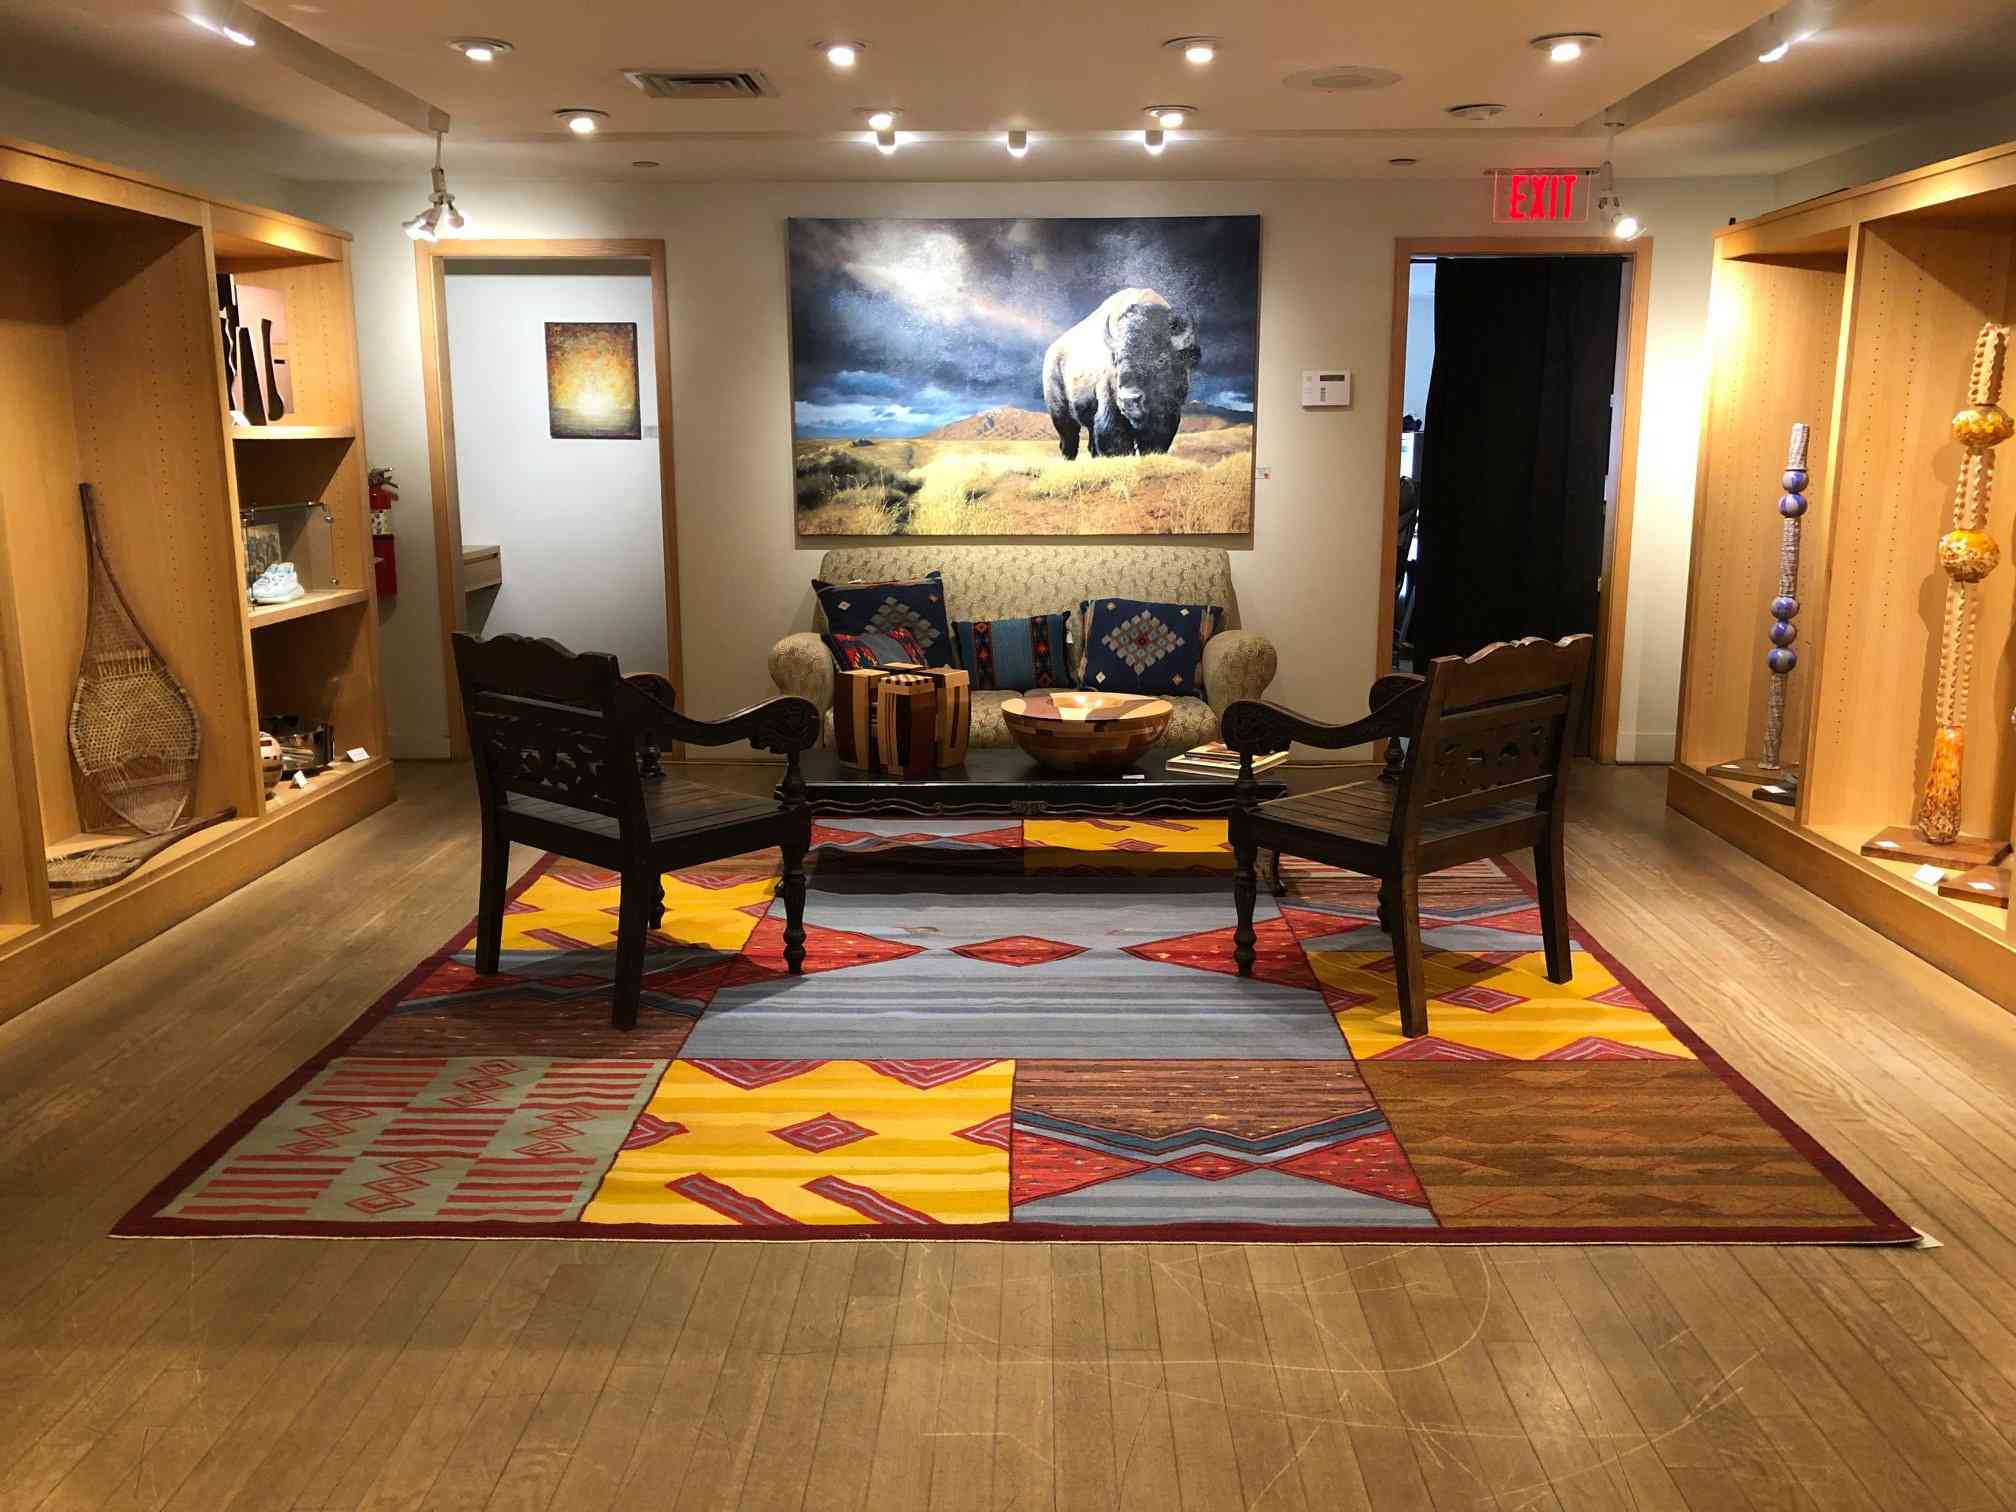 Chairs and couch on a rug in Santa Fe's True West Gallery